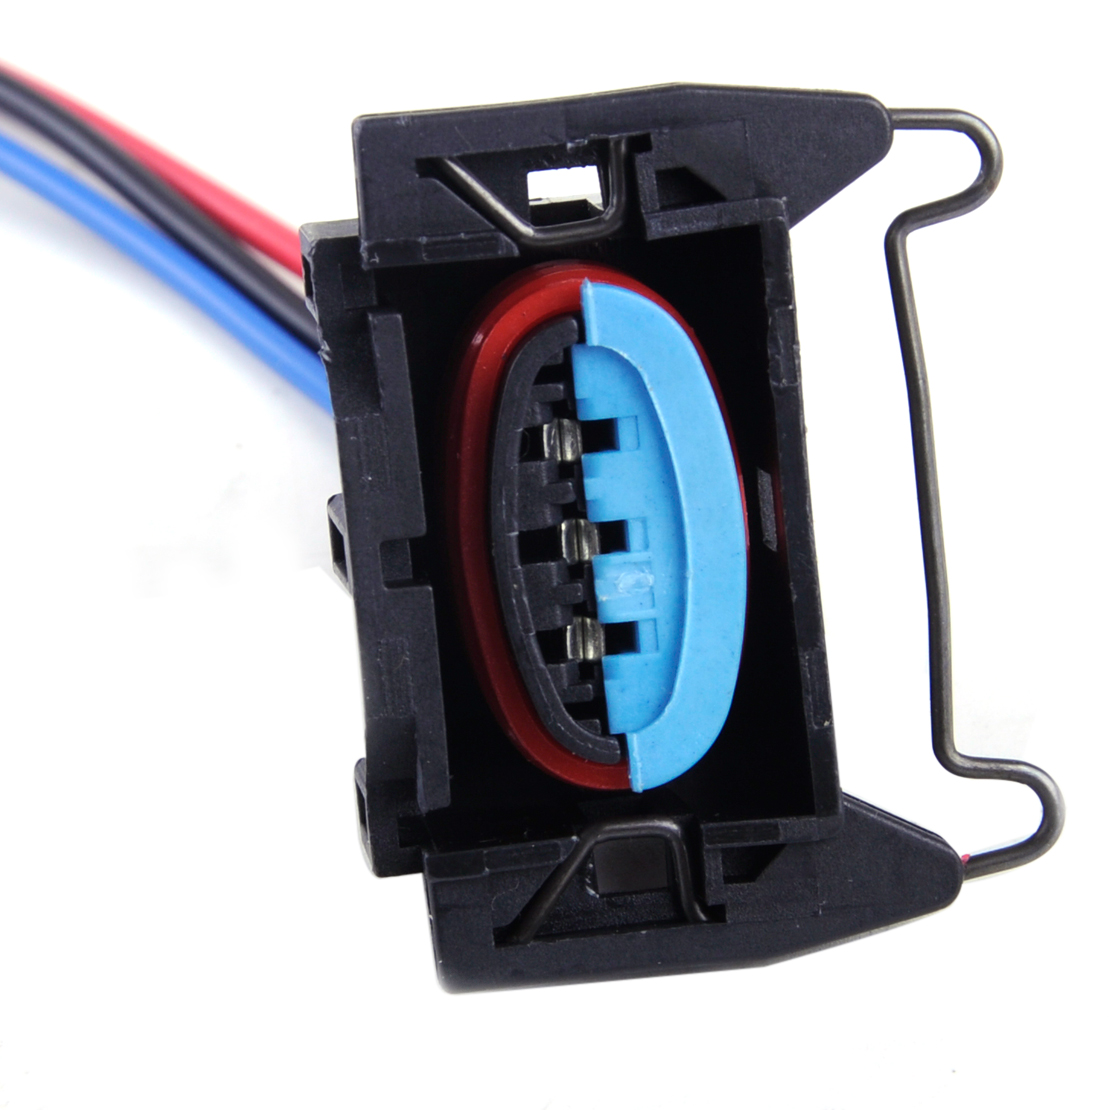 small resolution of dwcx ignition coil pack wiring harness connector fit for ford mazda mercury 645 302 3u2z14s411tna 1p1727 57 5508 in ignition coil from automobiles